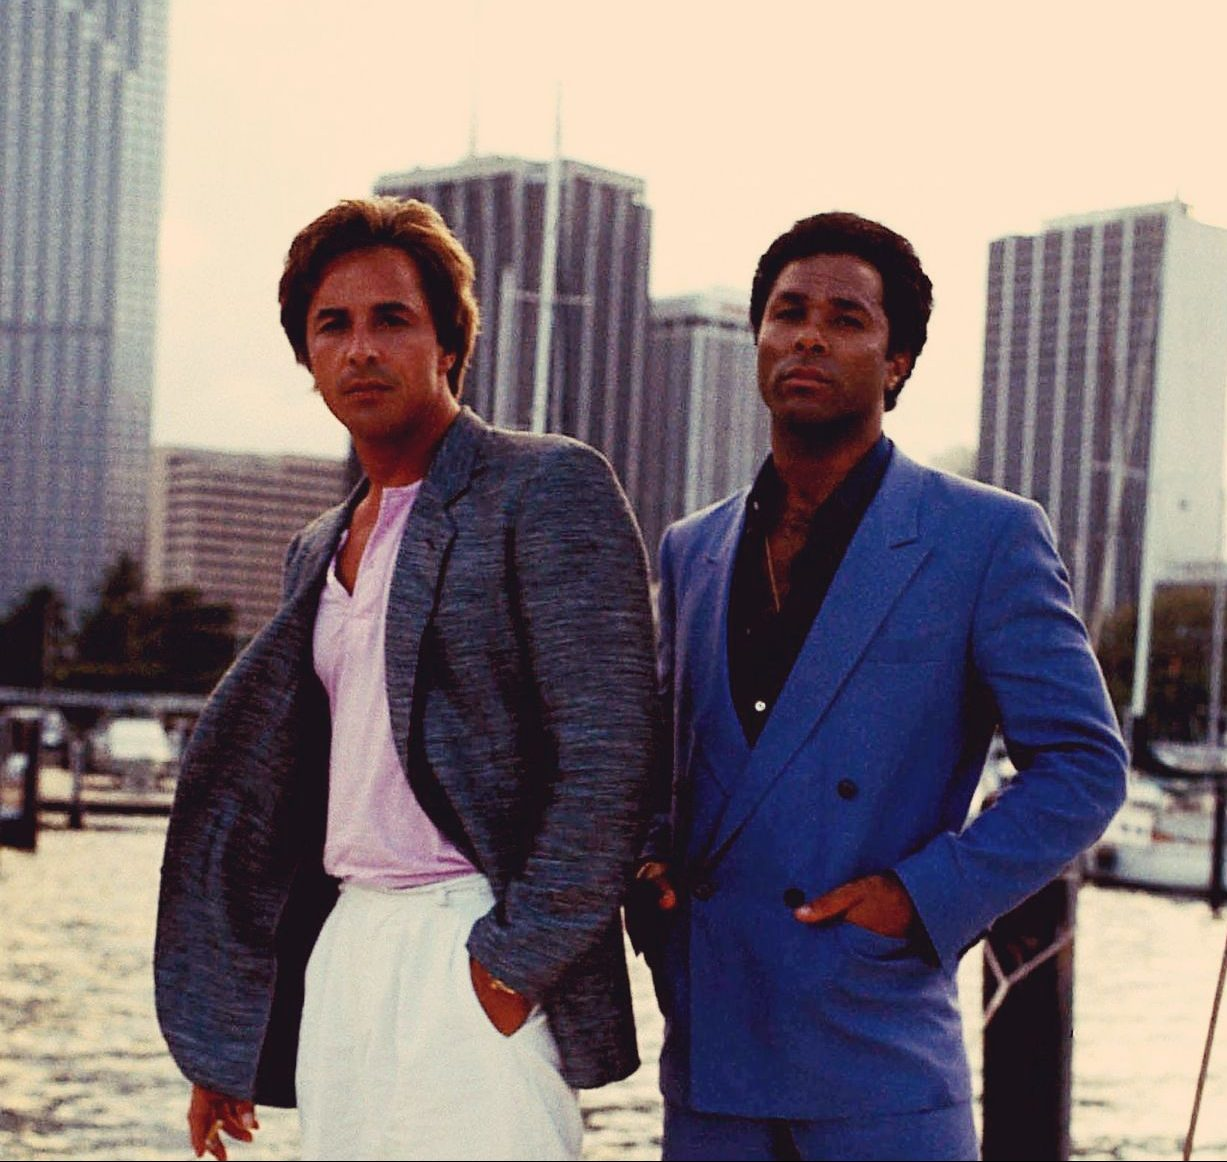 e063da5b6dce1621bc5ee273db83365c e1608551912605 20 Things You Probably Didn't Know About Miami Vice